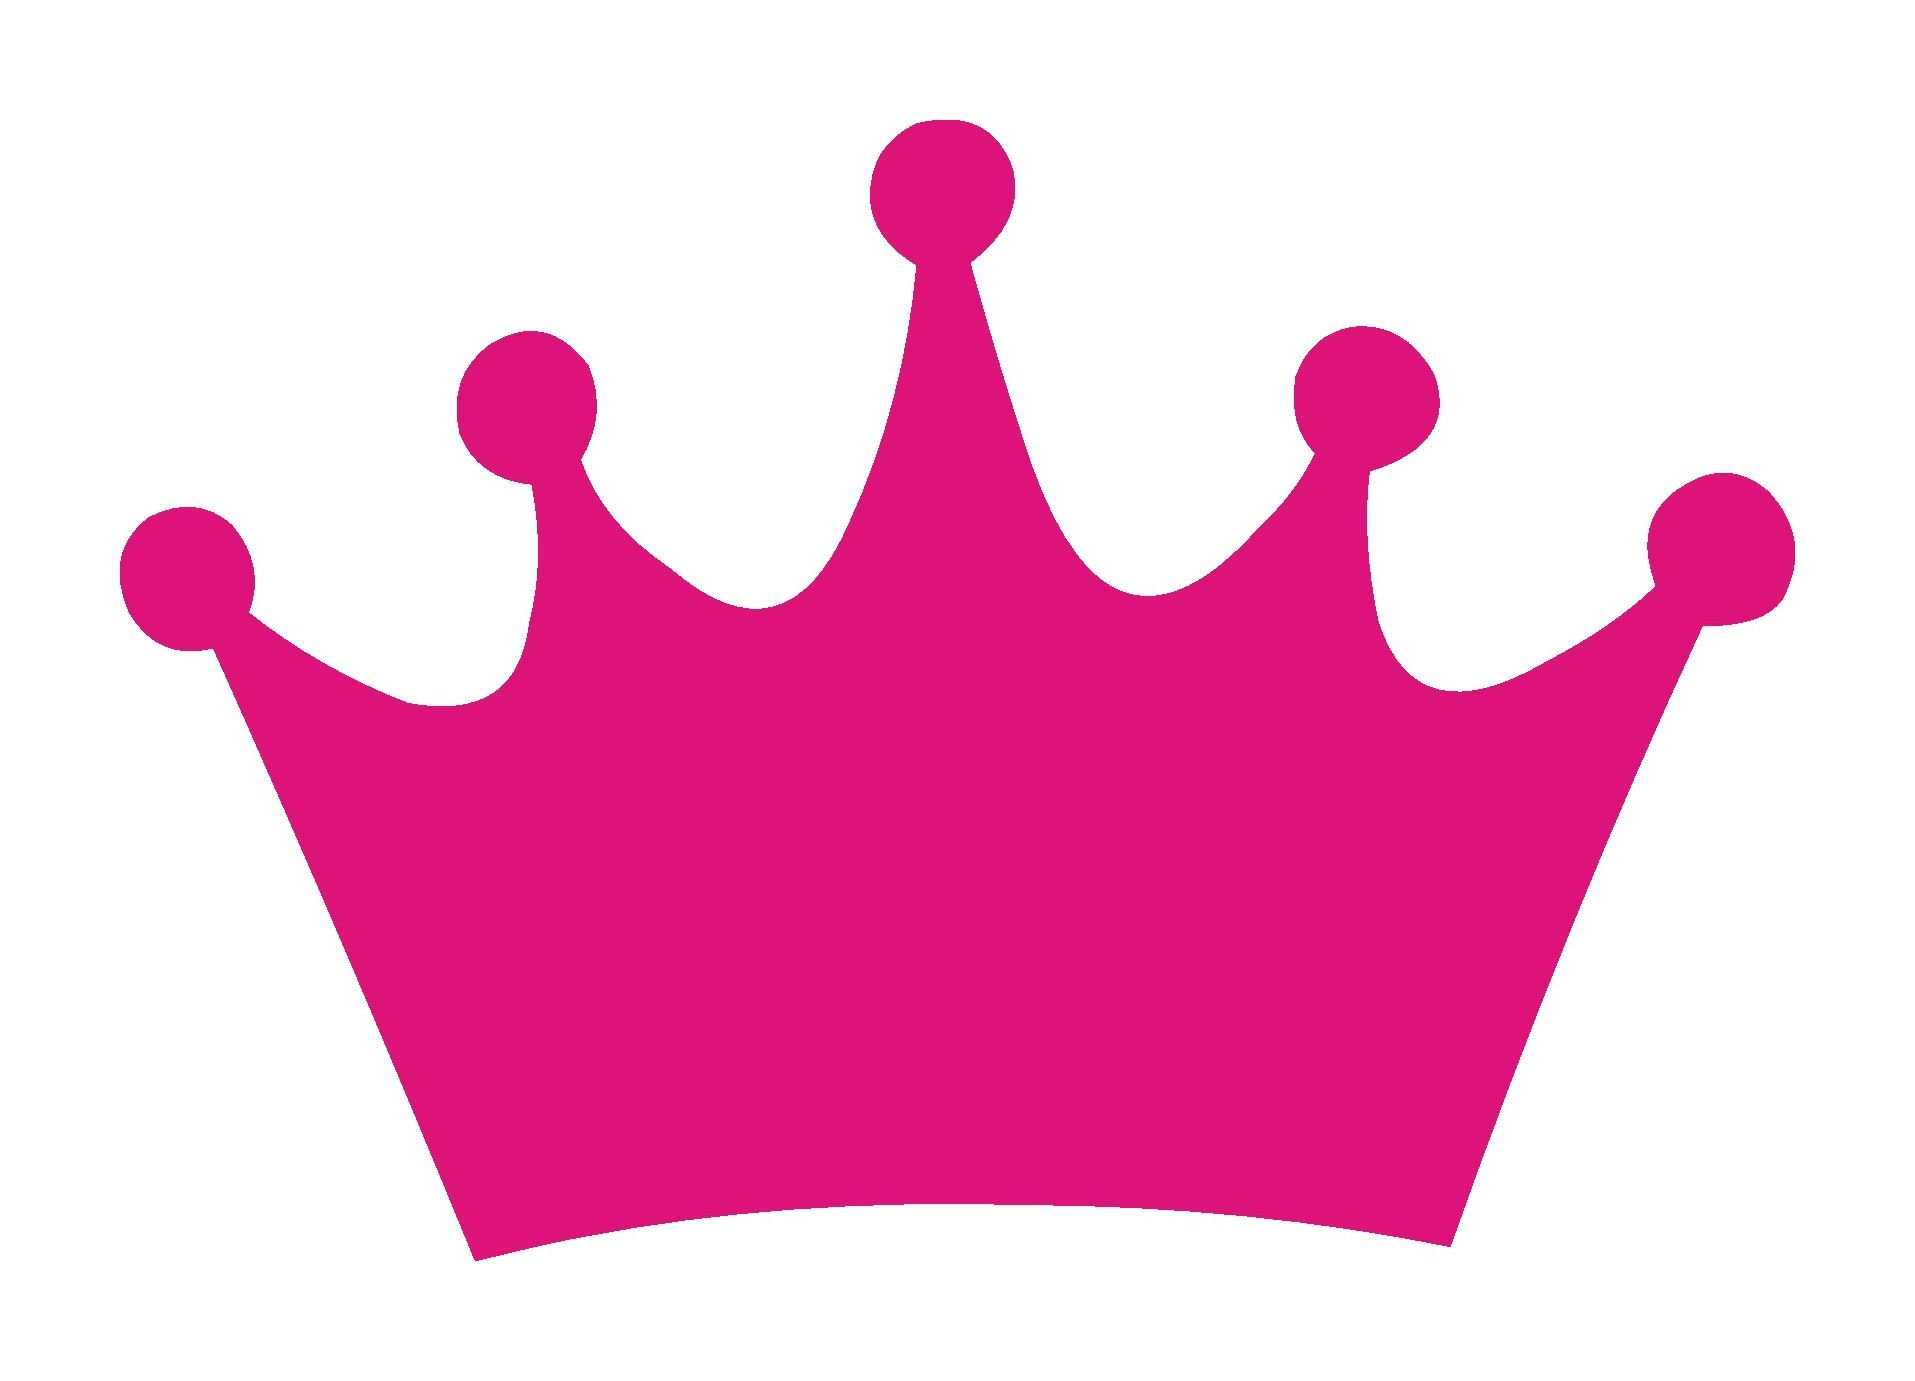 this is best princess crown clipart 15777 princess crown png rh pinterest com crown clipart template crown clipart images